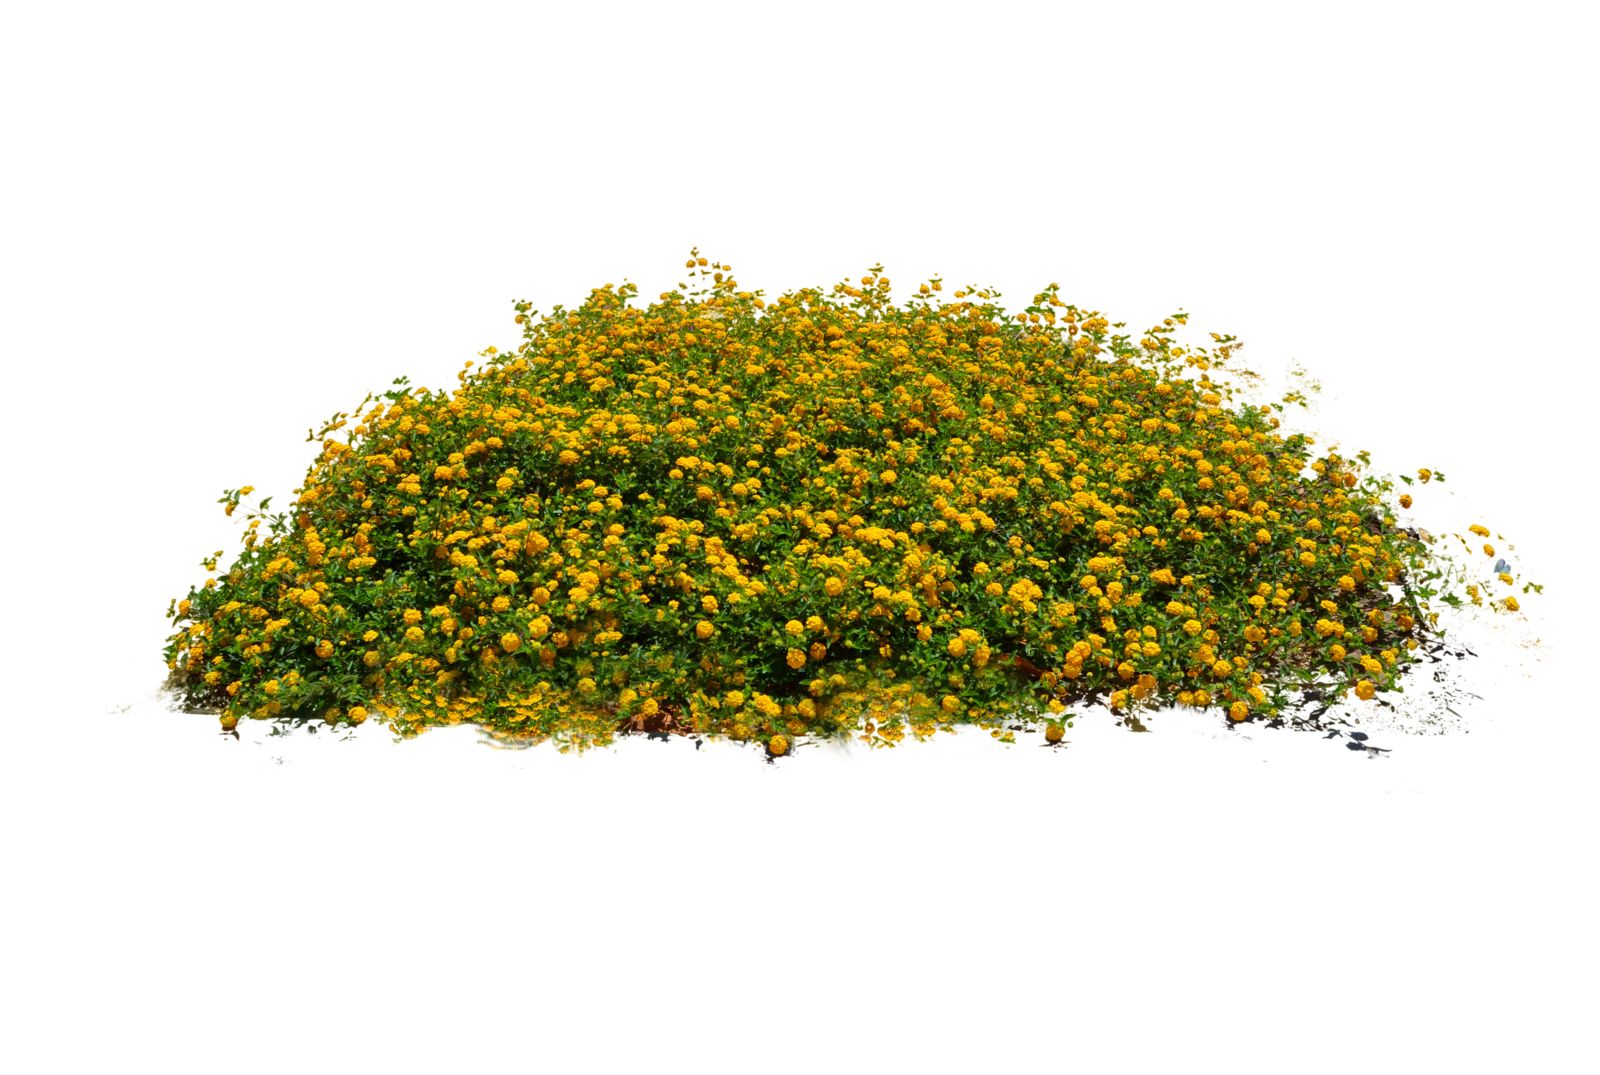 Download stock plower image png photoshop. Plants transparent pictures free